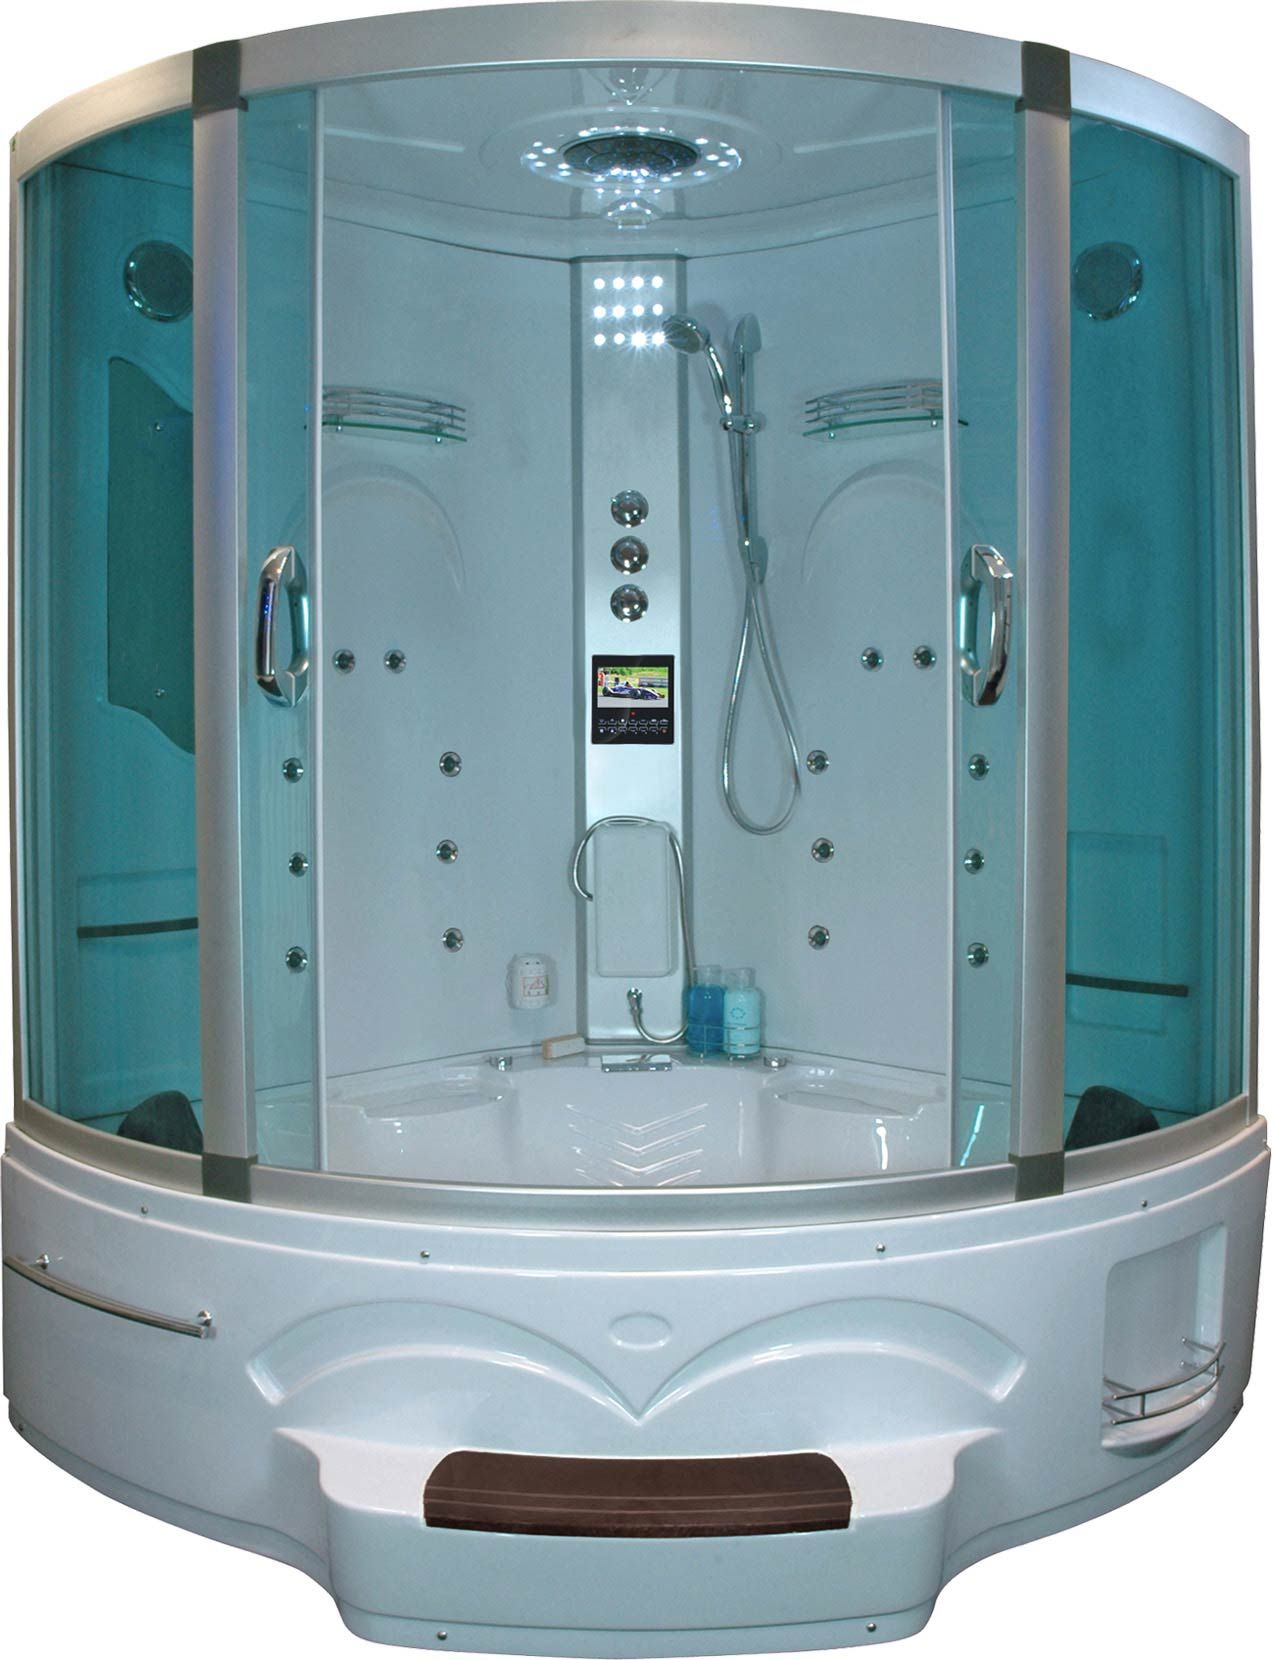 2 person steam shower room with jacuzzi whirlpool and TV | Dream ...